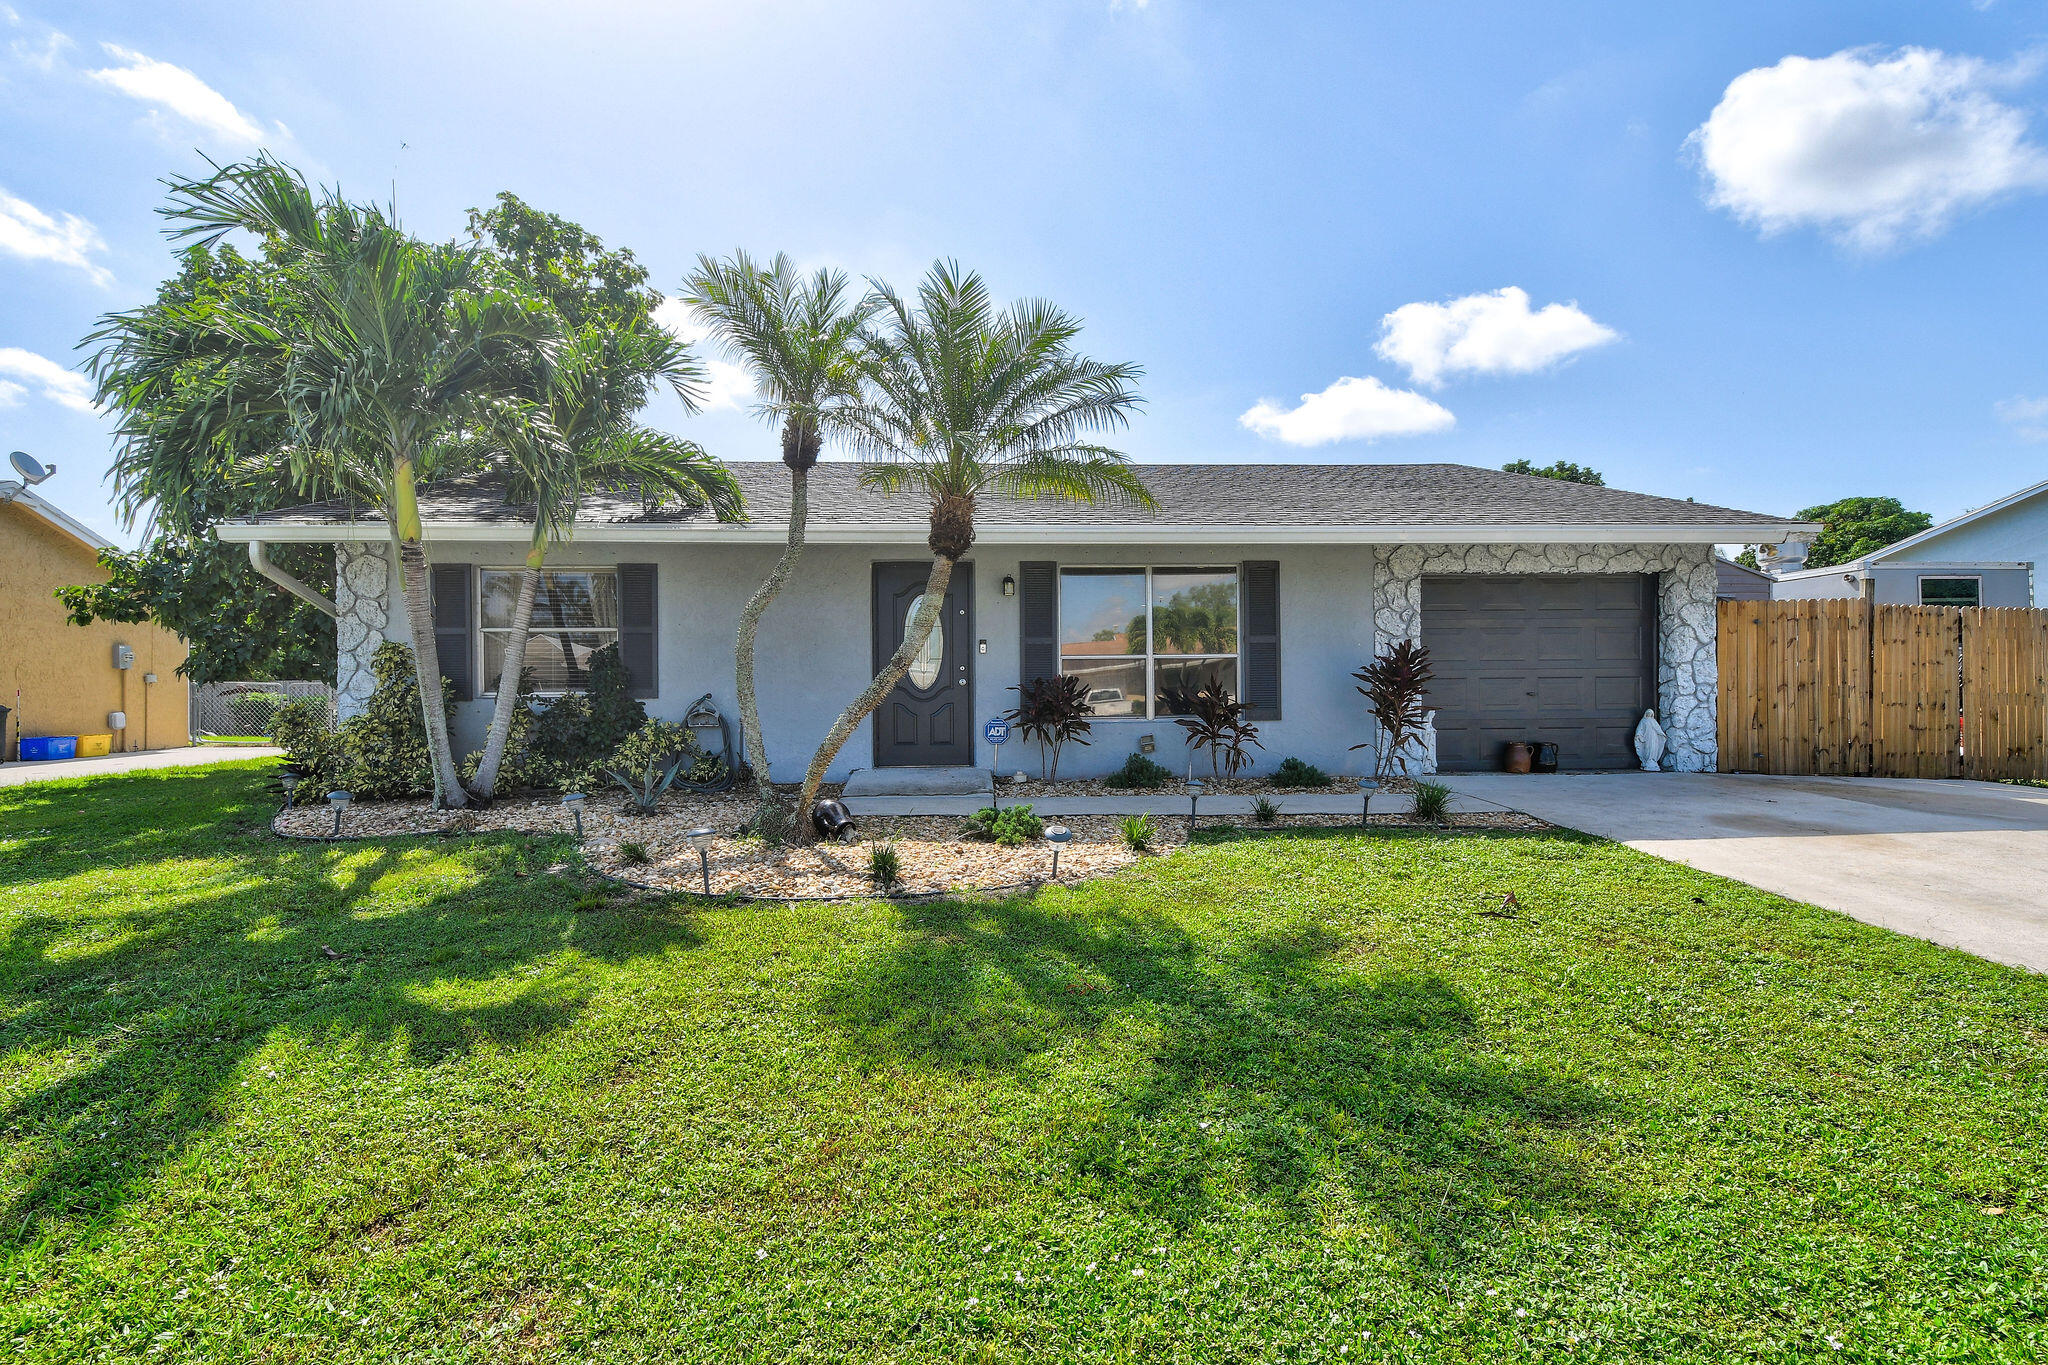 Home for sale in Concept Homes Lantana 04 Lake Worth Florida